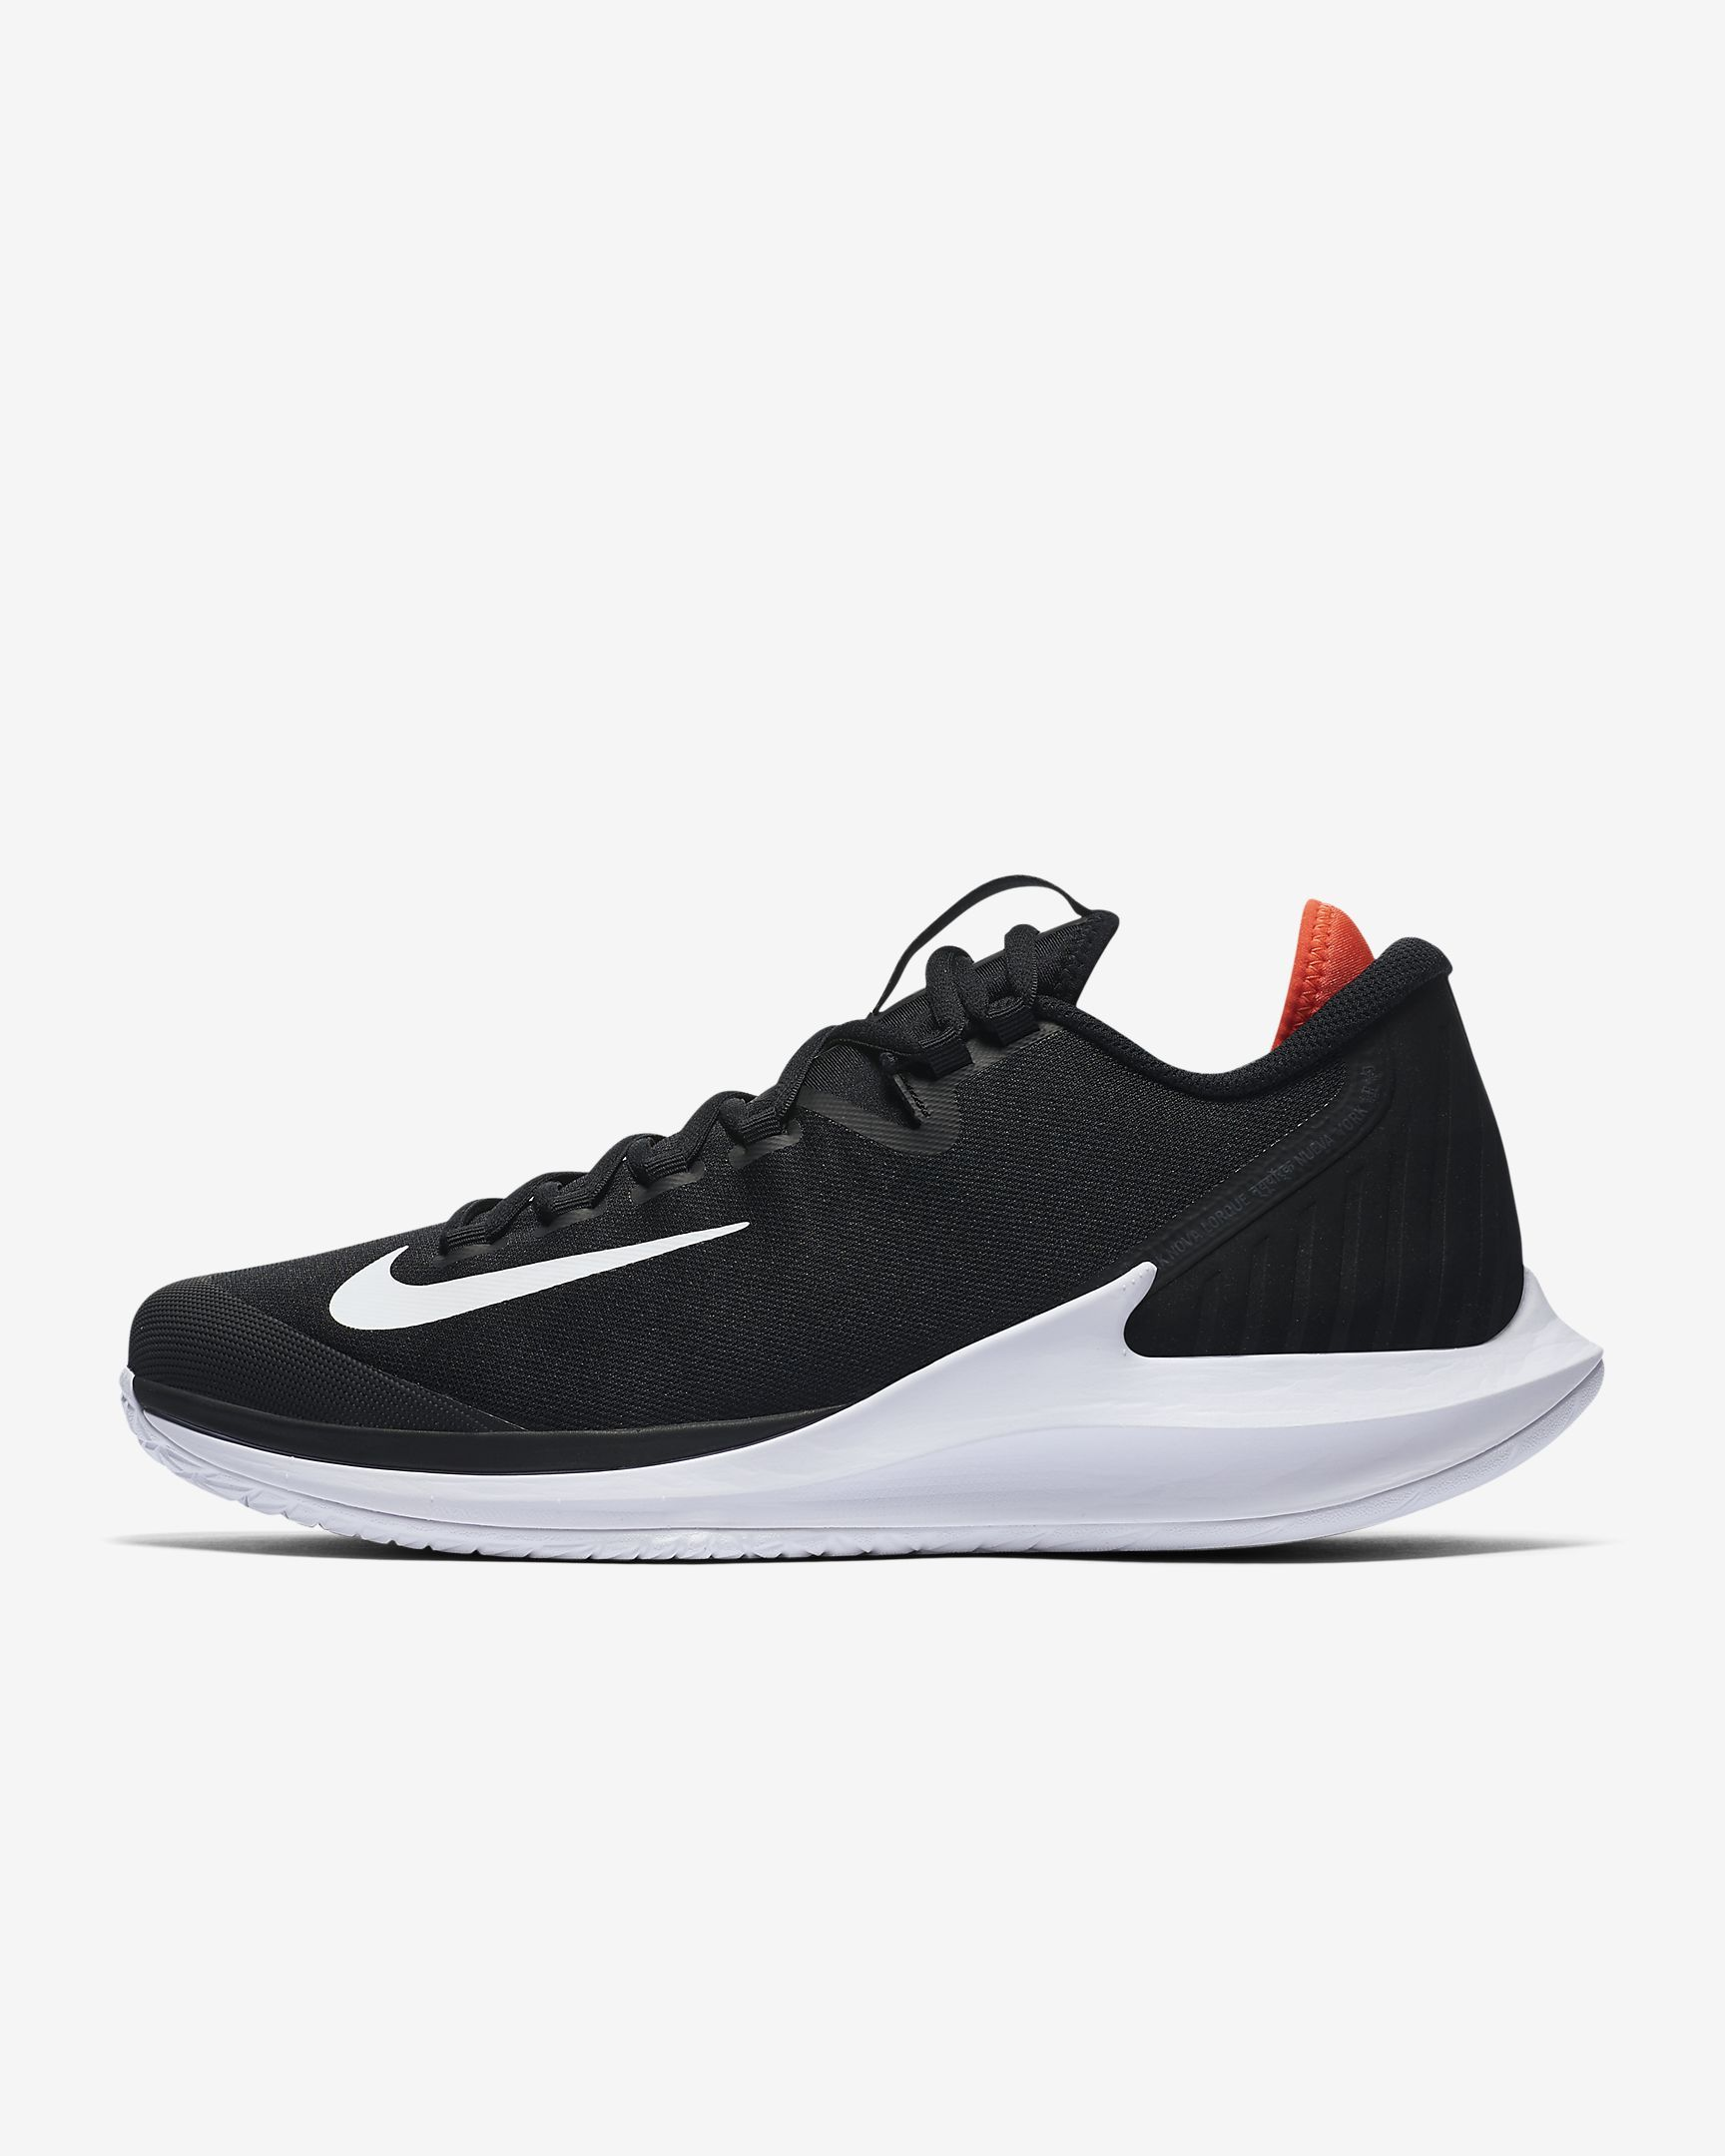 NikeCourt Air Zoom Zero Men's Tennis Shoe | Nike, Sneakers